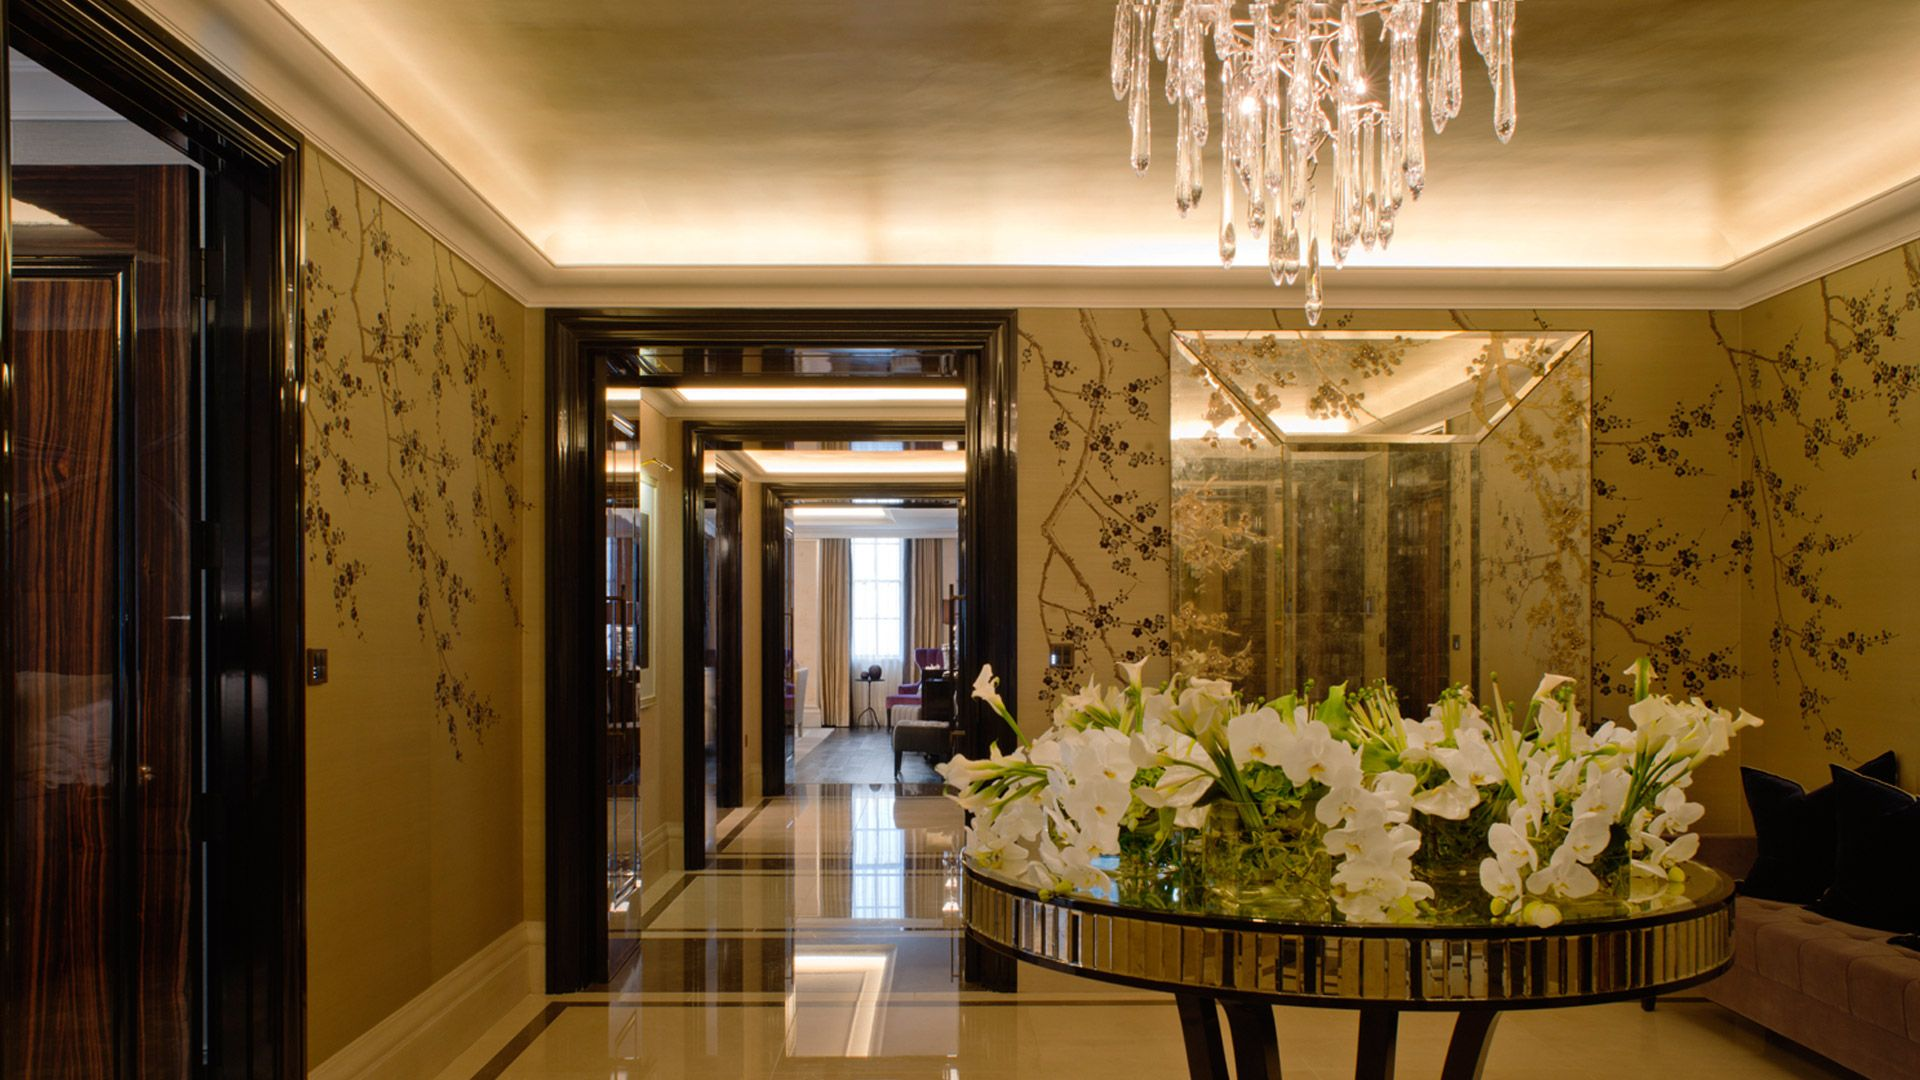 Luxury Residential Design London Restoration Architects Goddard Littlefair Architects Specialising In Luxurious Interior And